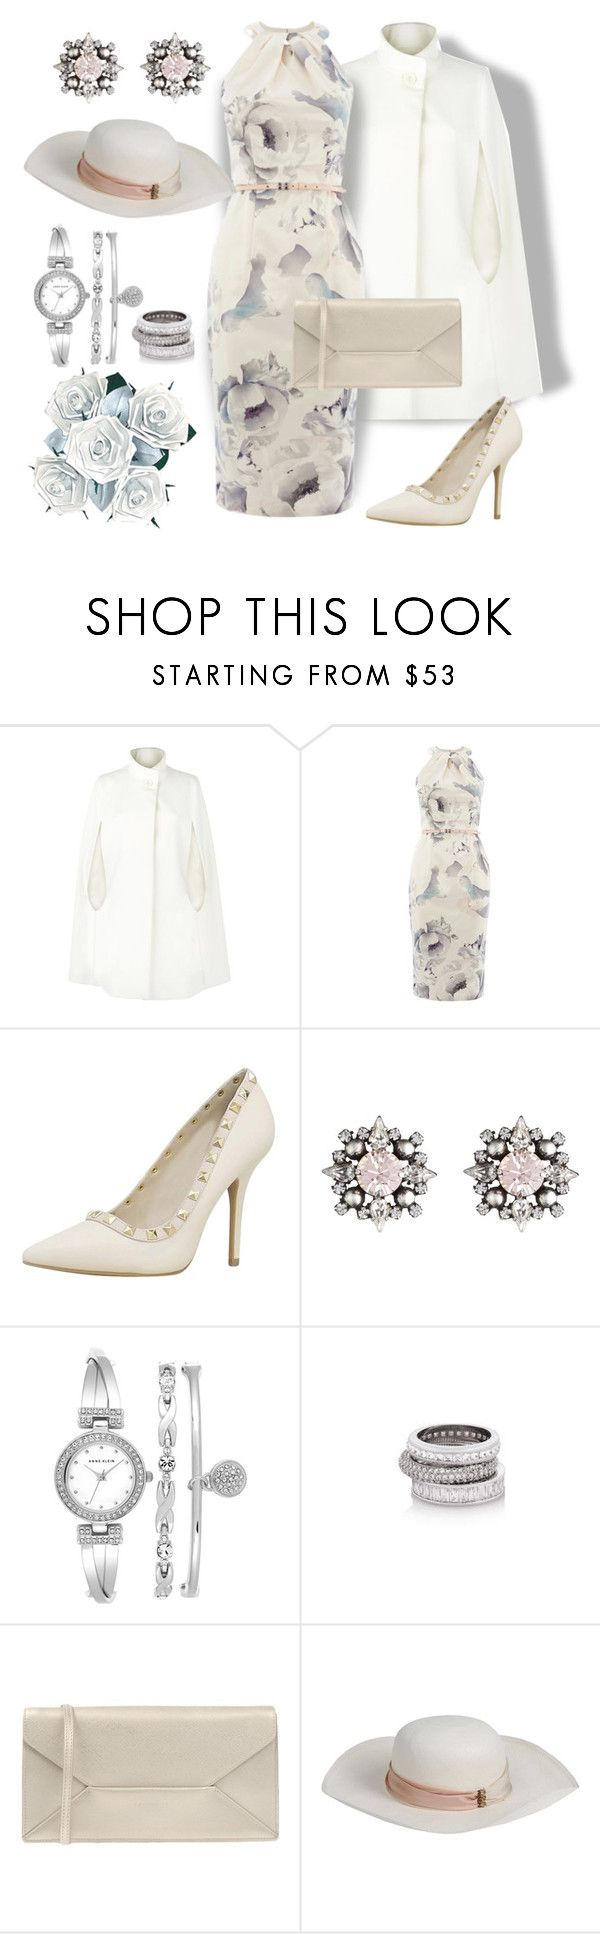 """""""Semi-Formal Occasion"""" by dundiddit ❤ liked on Polyvore featuring мода, Harrods, Coast, DANNIJO, Anne Klein, Henri Bendel, Coccinelle и Pachacuti"""